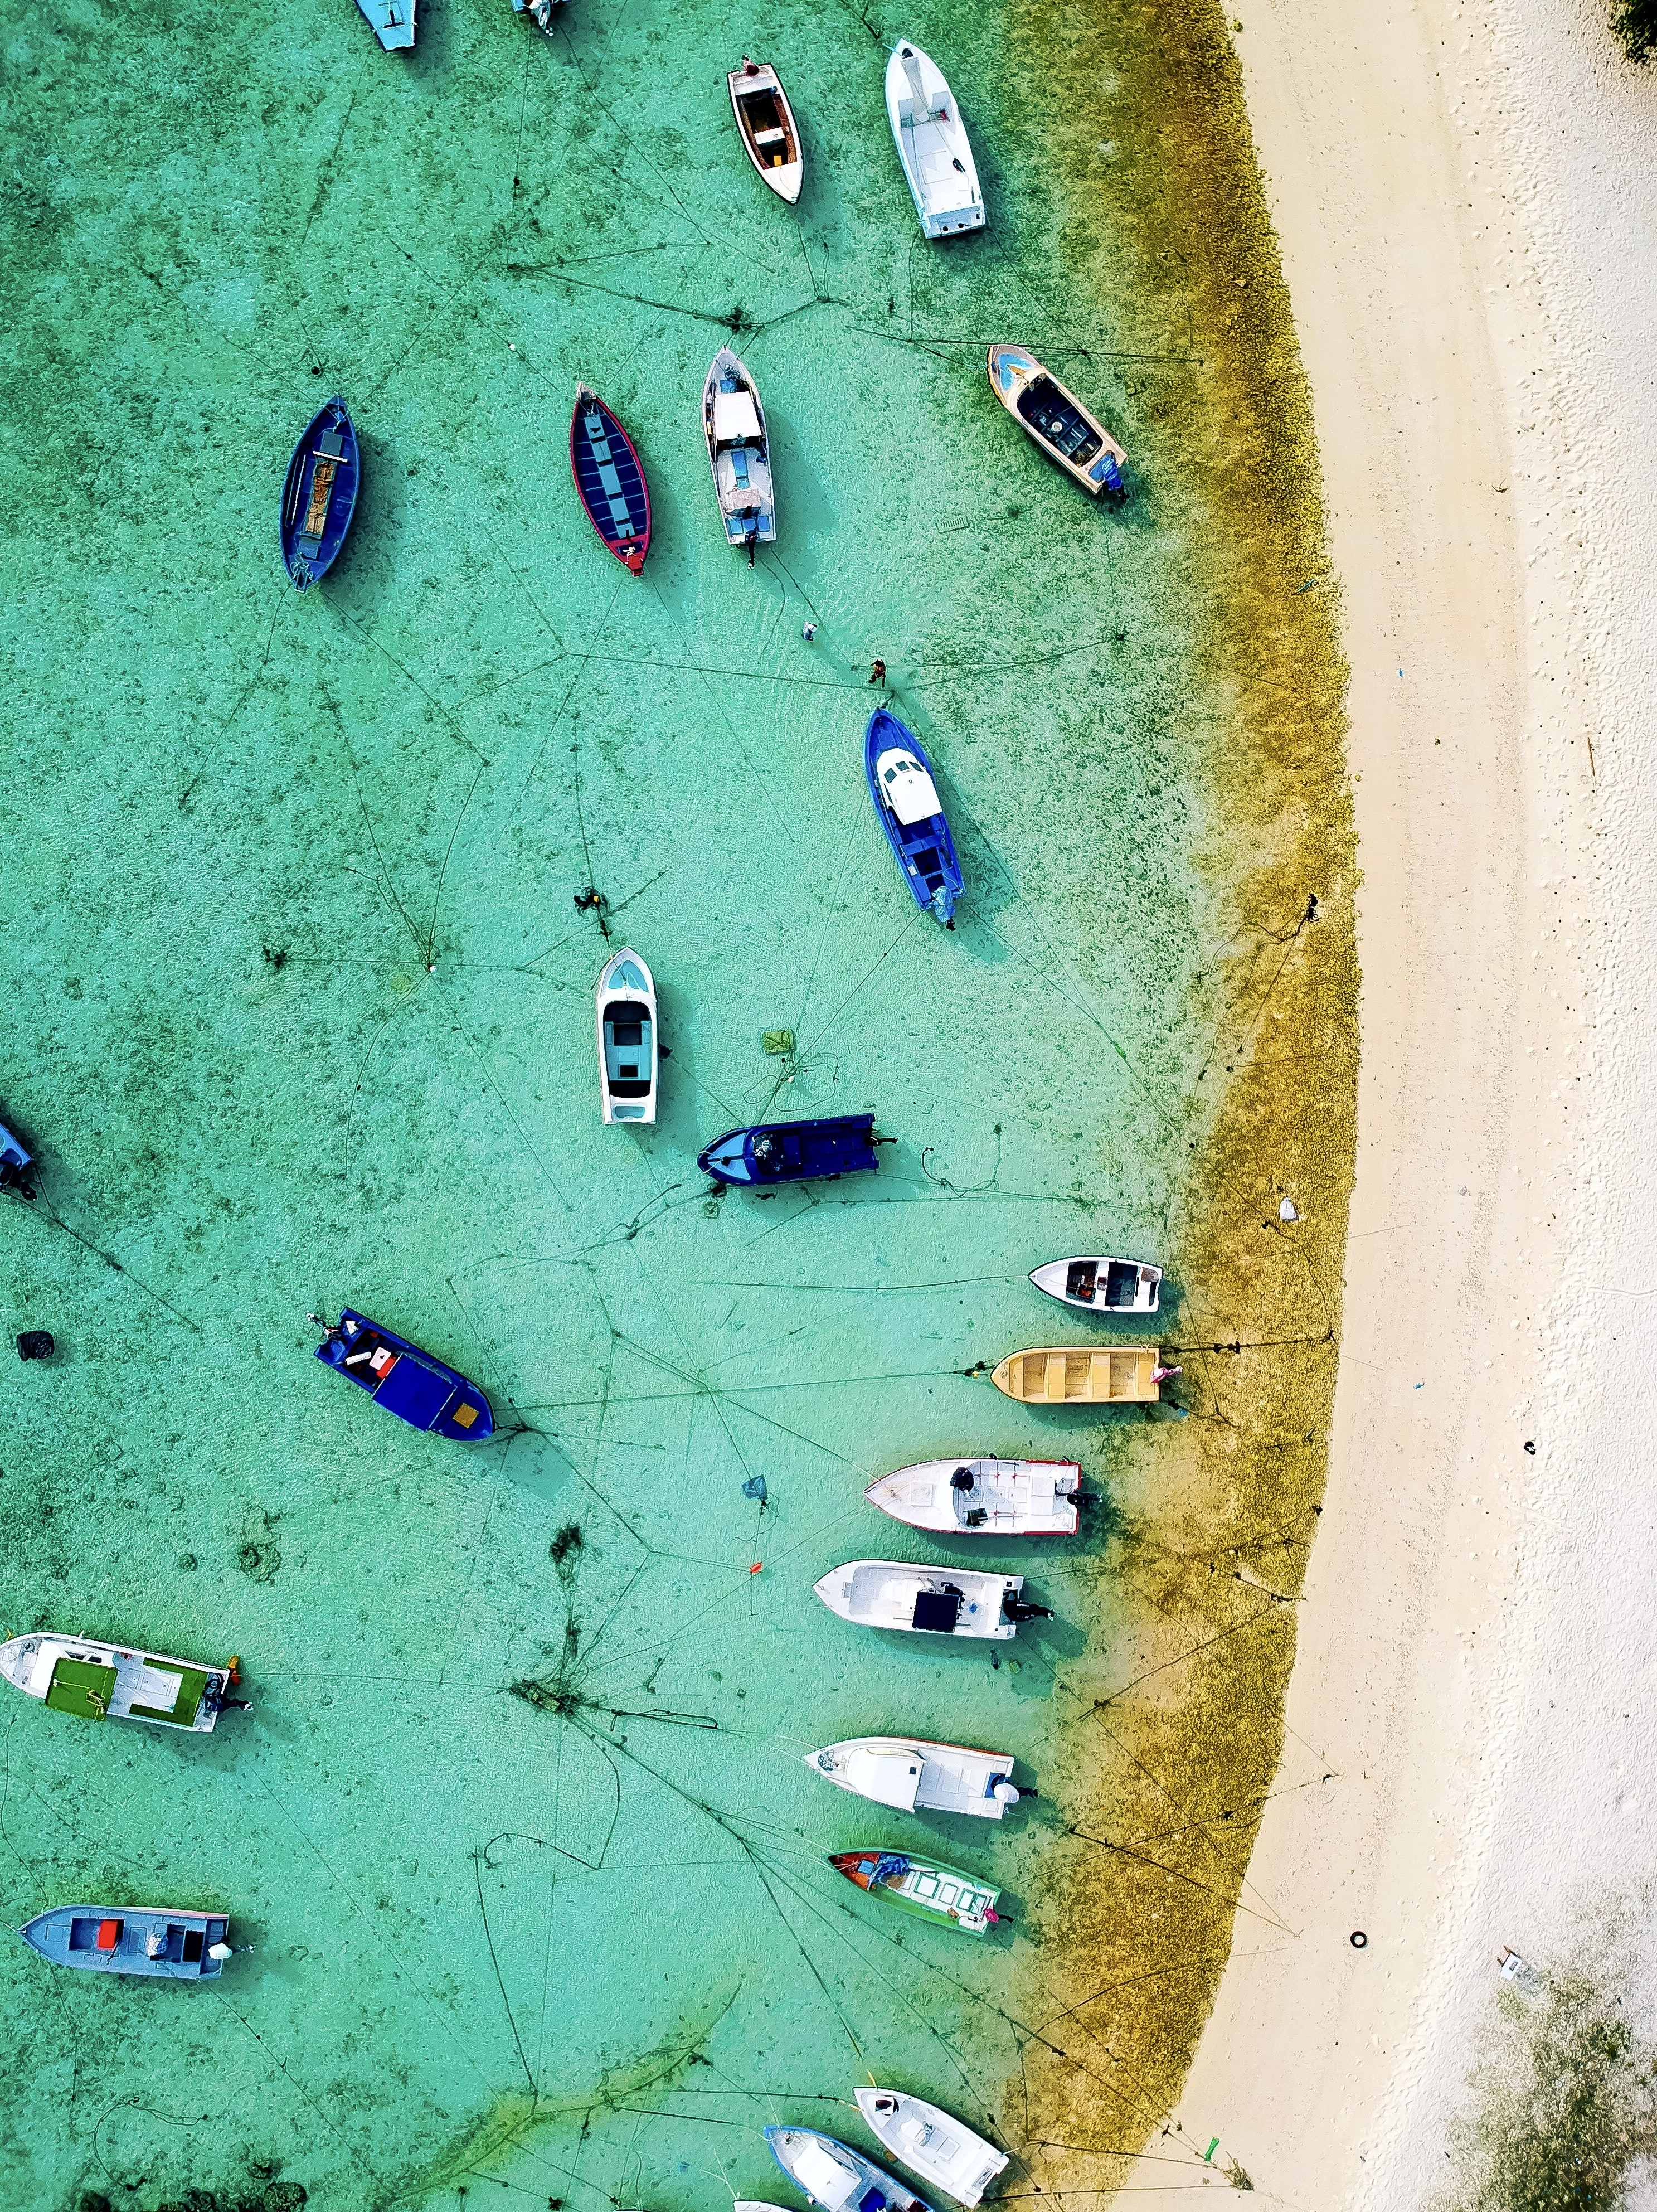 aerial view of boat on body of water during daytime